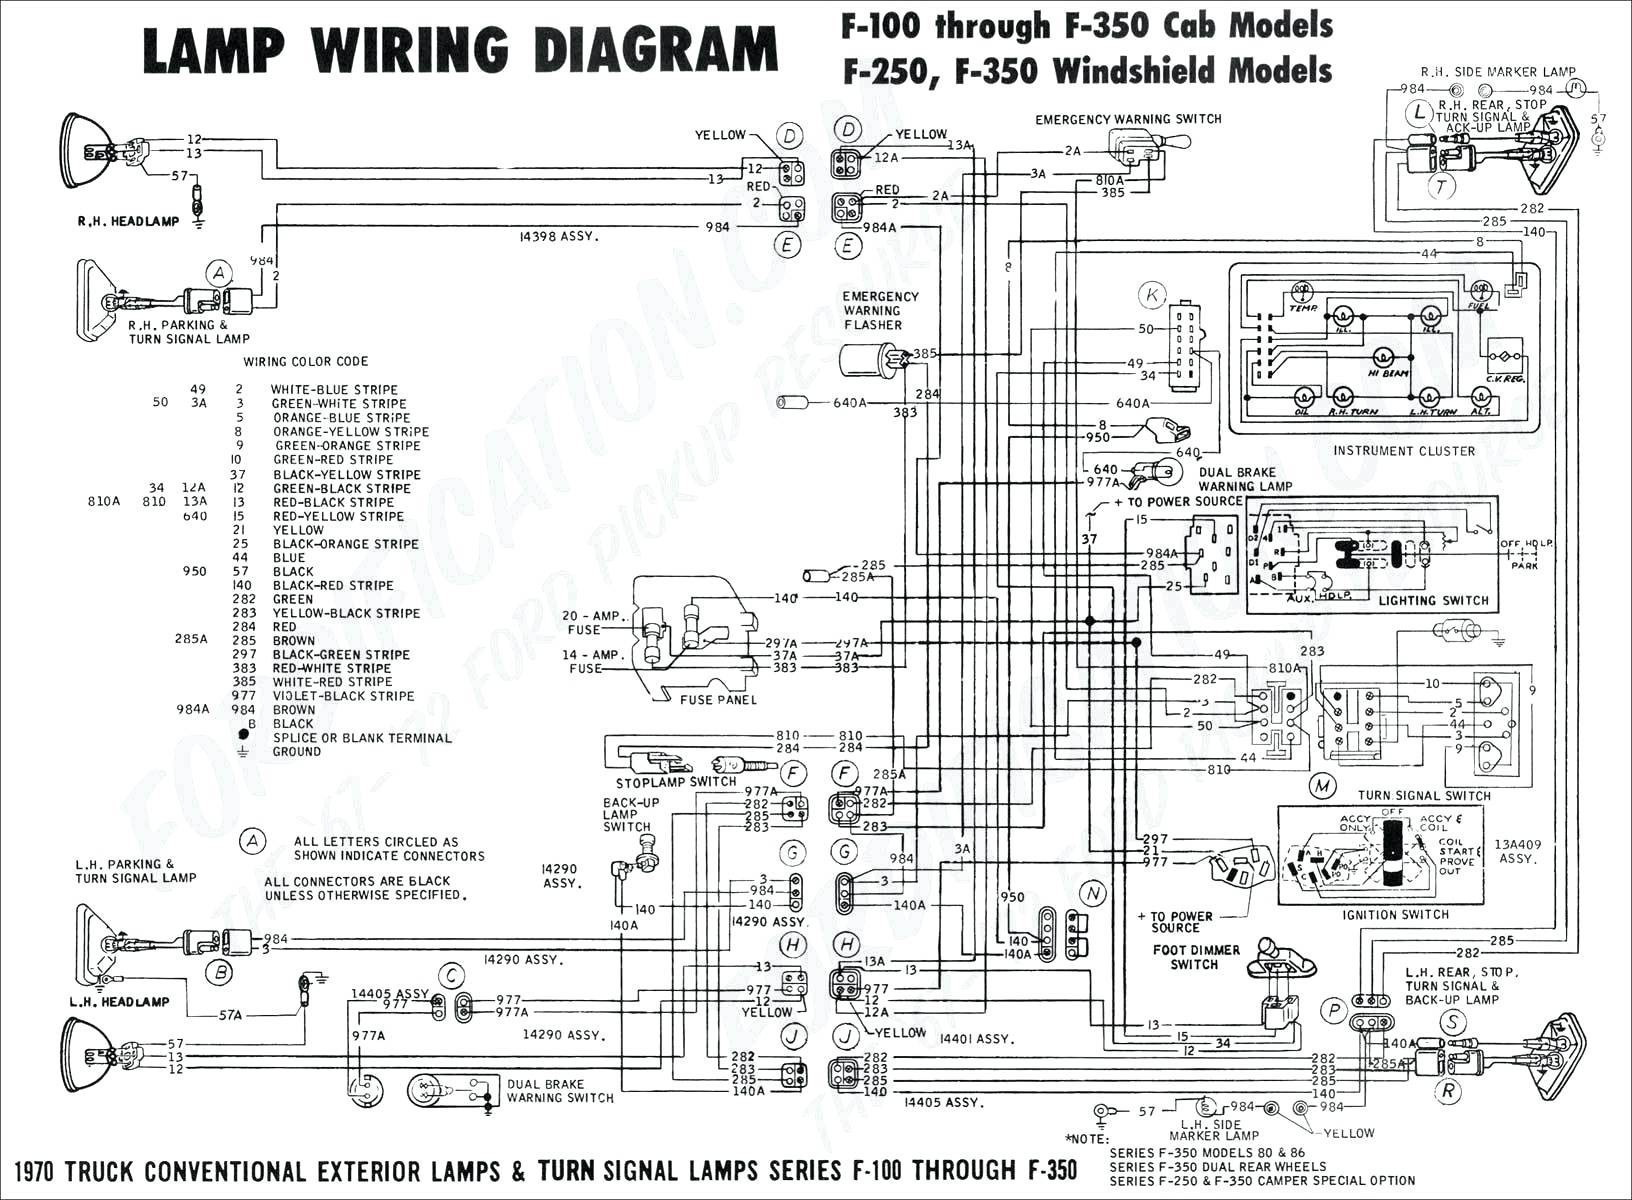 2002 ford Explorer V8 Engine Diagram 5 4 Triton Engine